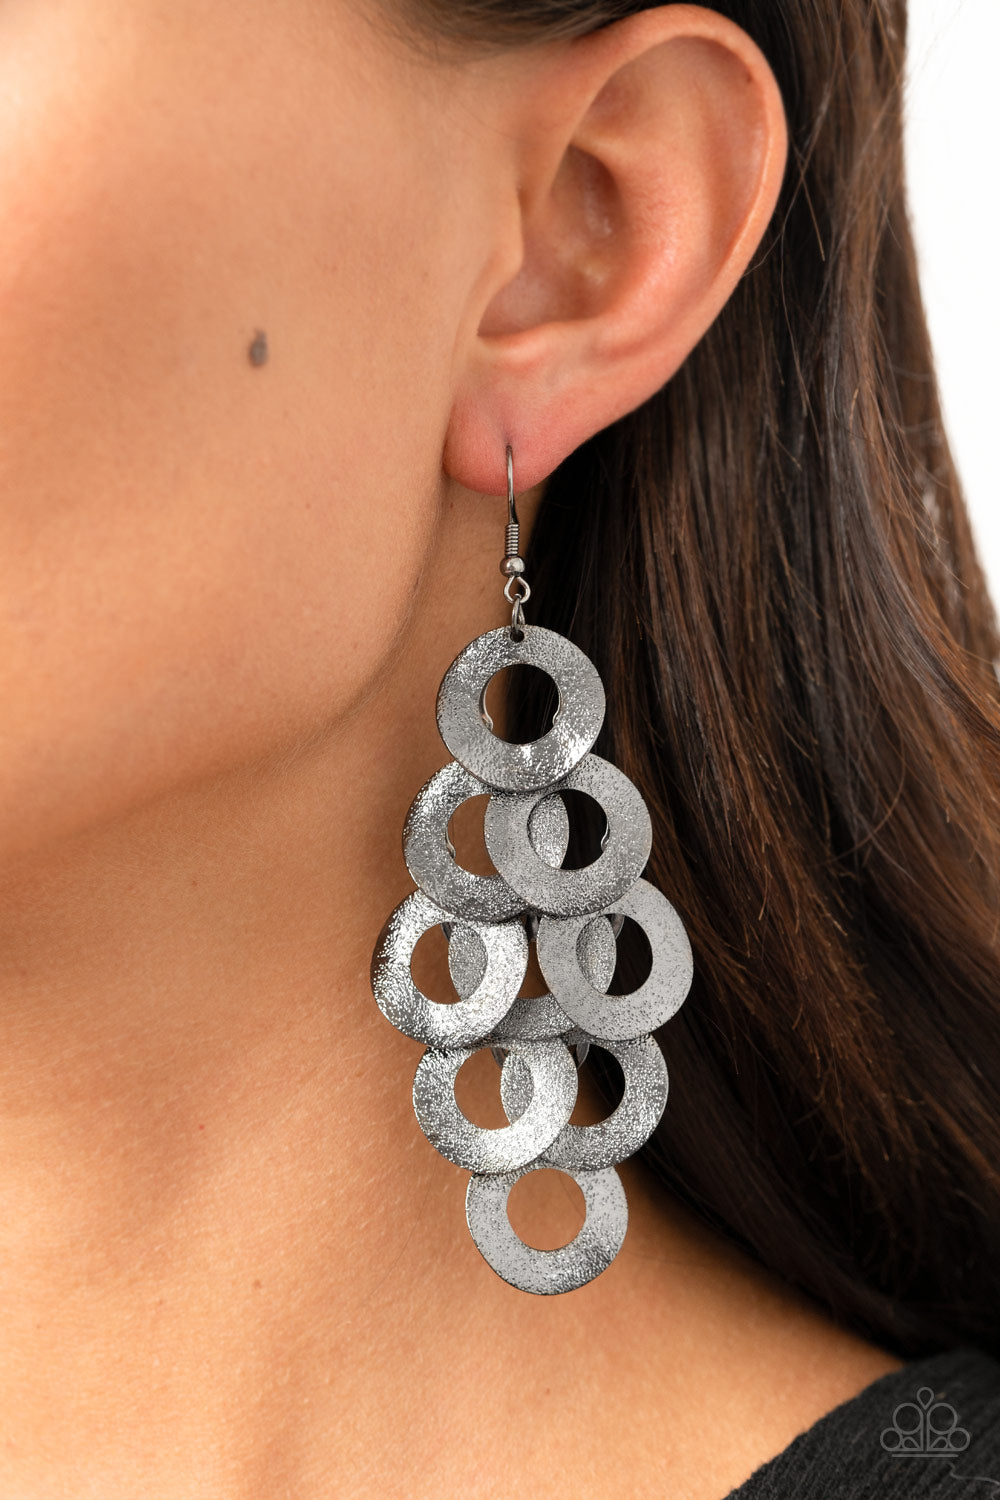 Scattered Shimmer - Black Earrings - Paparazzi Accessories